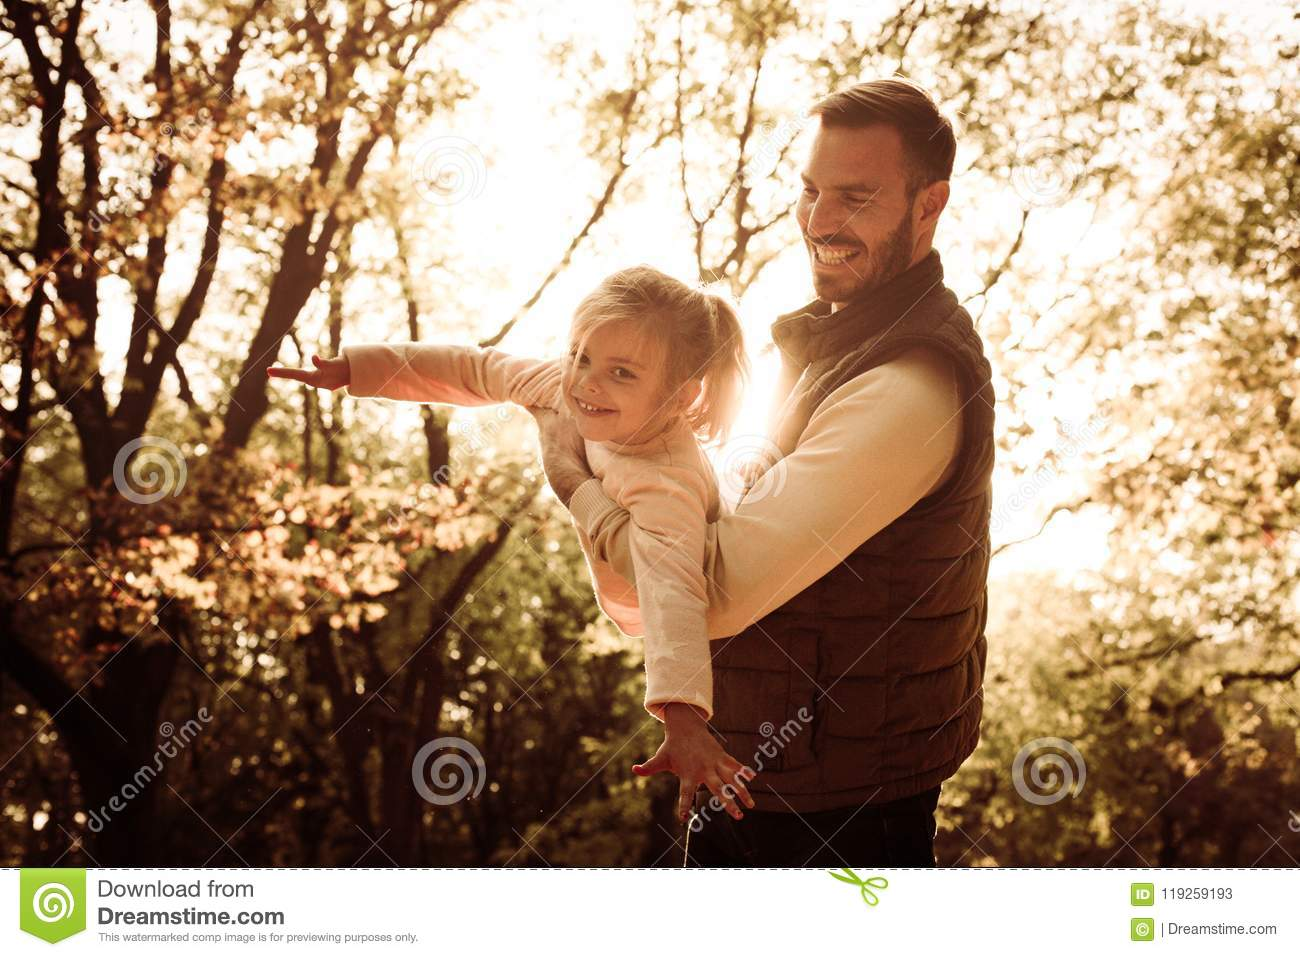 Sunny day in nature. Father and daughter.